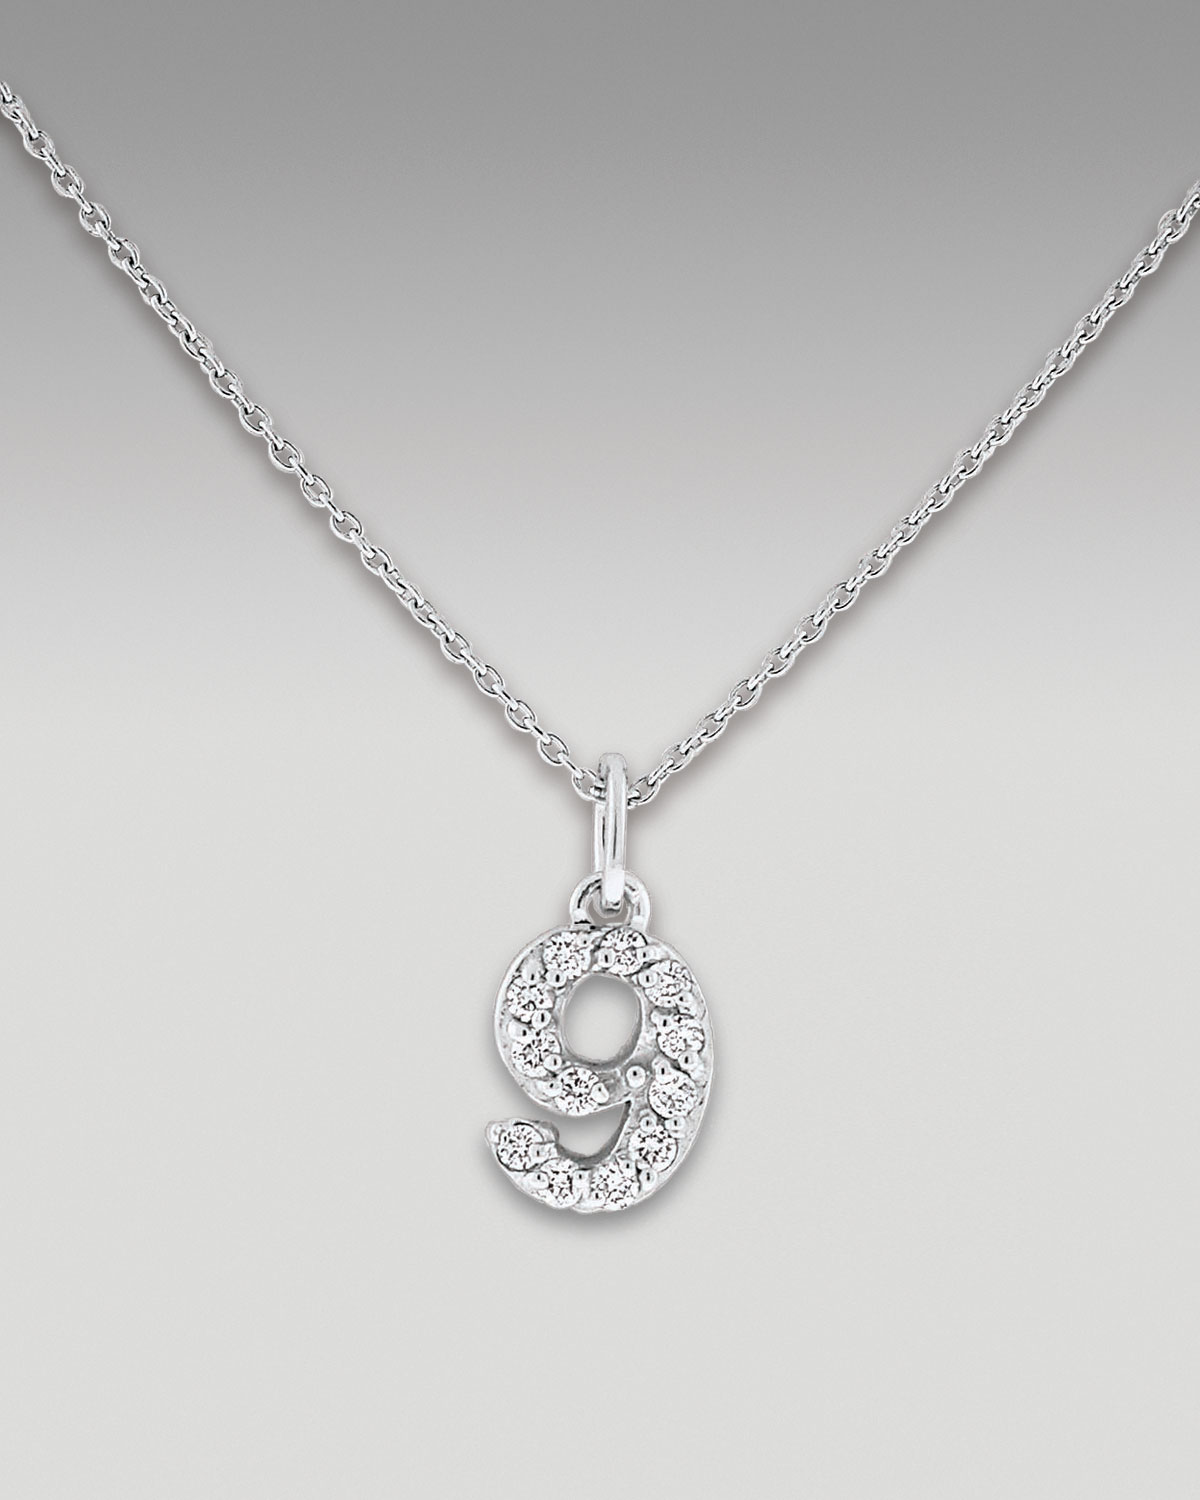 Lyst kc designs diamond number necklace 9 in white gallery mozeypictures Image collections